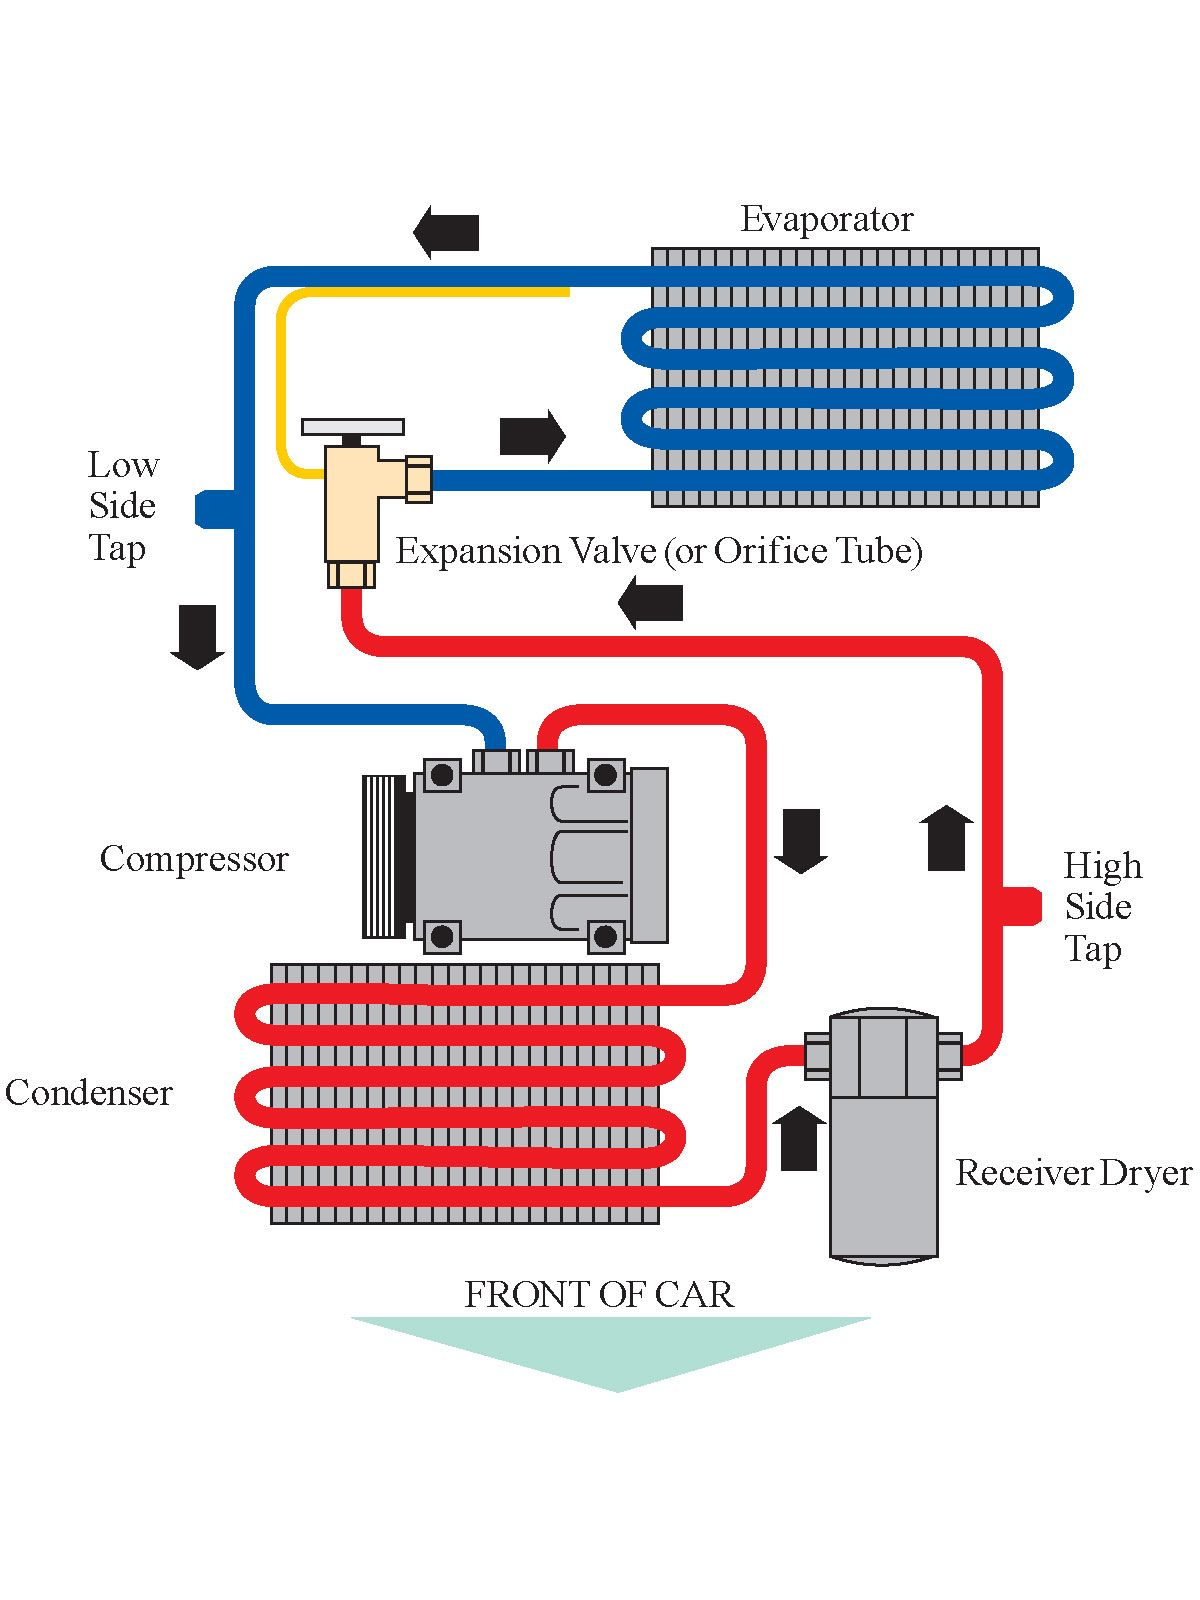 Mini Split System Wiring Diagram Ac Free For You Blogs Rh 15 14 2 Restaurant Freinsheimer Hof De Unit